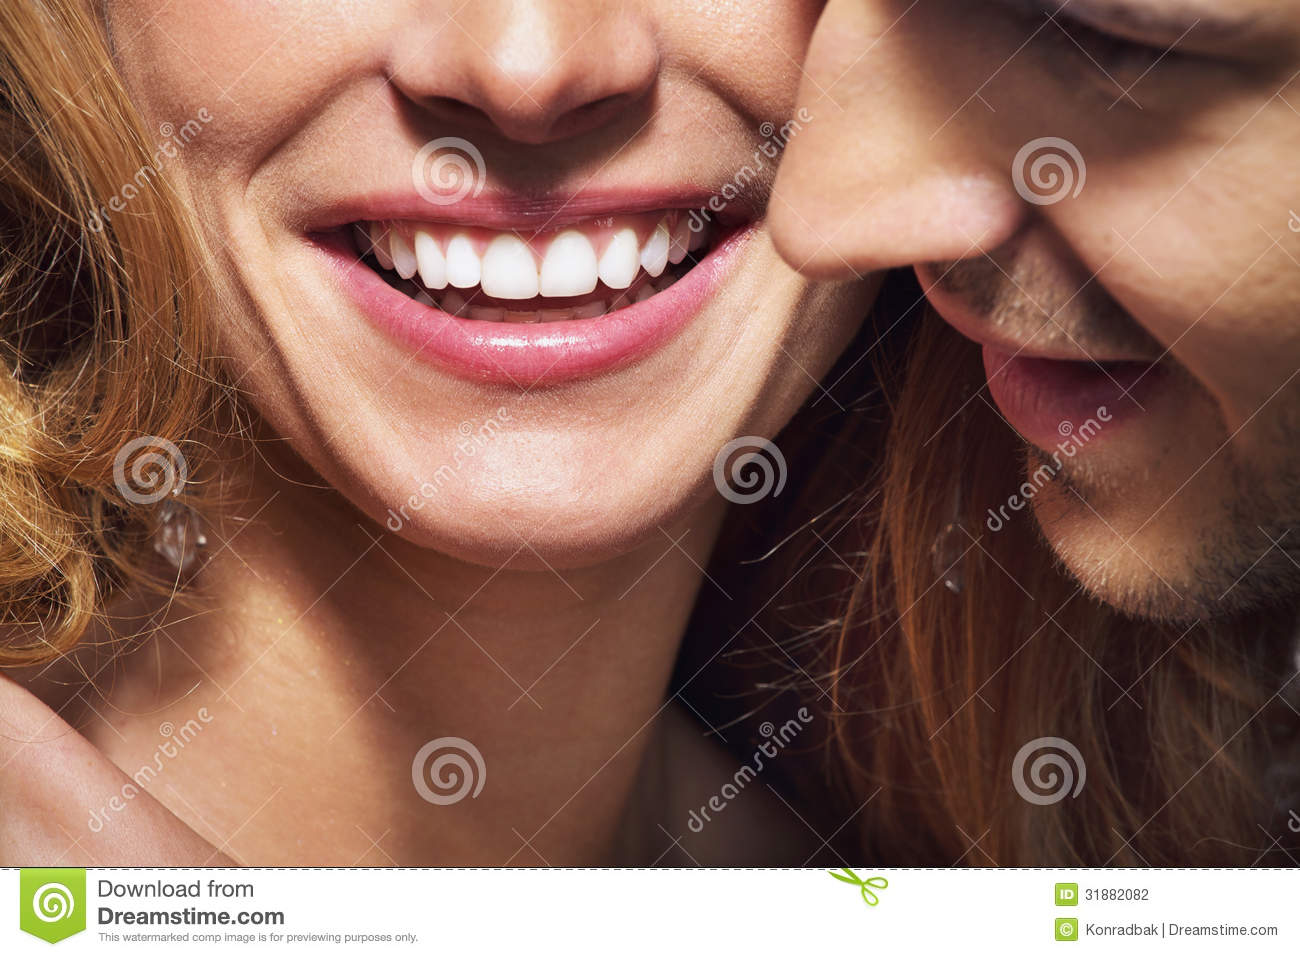 Nice Shoot Of Great Smile And White Teeth Stock Photography Image 31882082